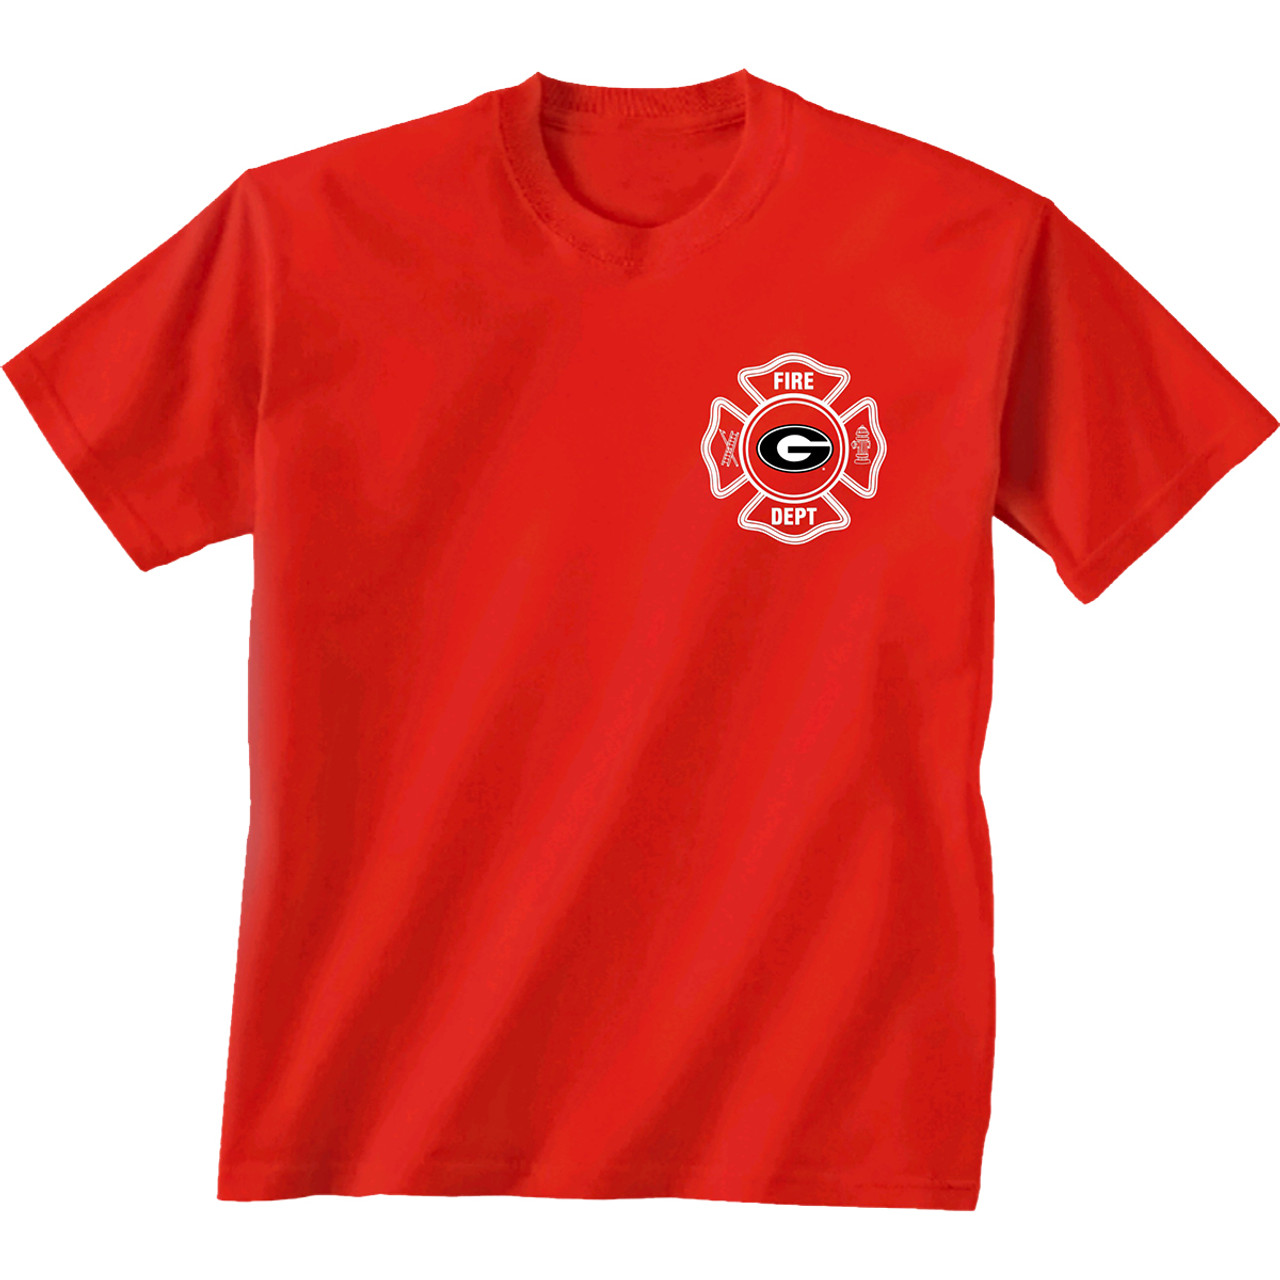 5e64fe75 University Of Georgia Bulldogs Firefighter Youth T-Shirt - Trenz Shirt  Company